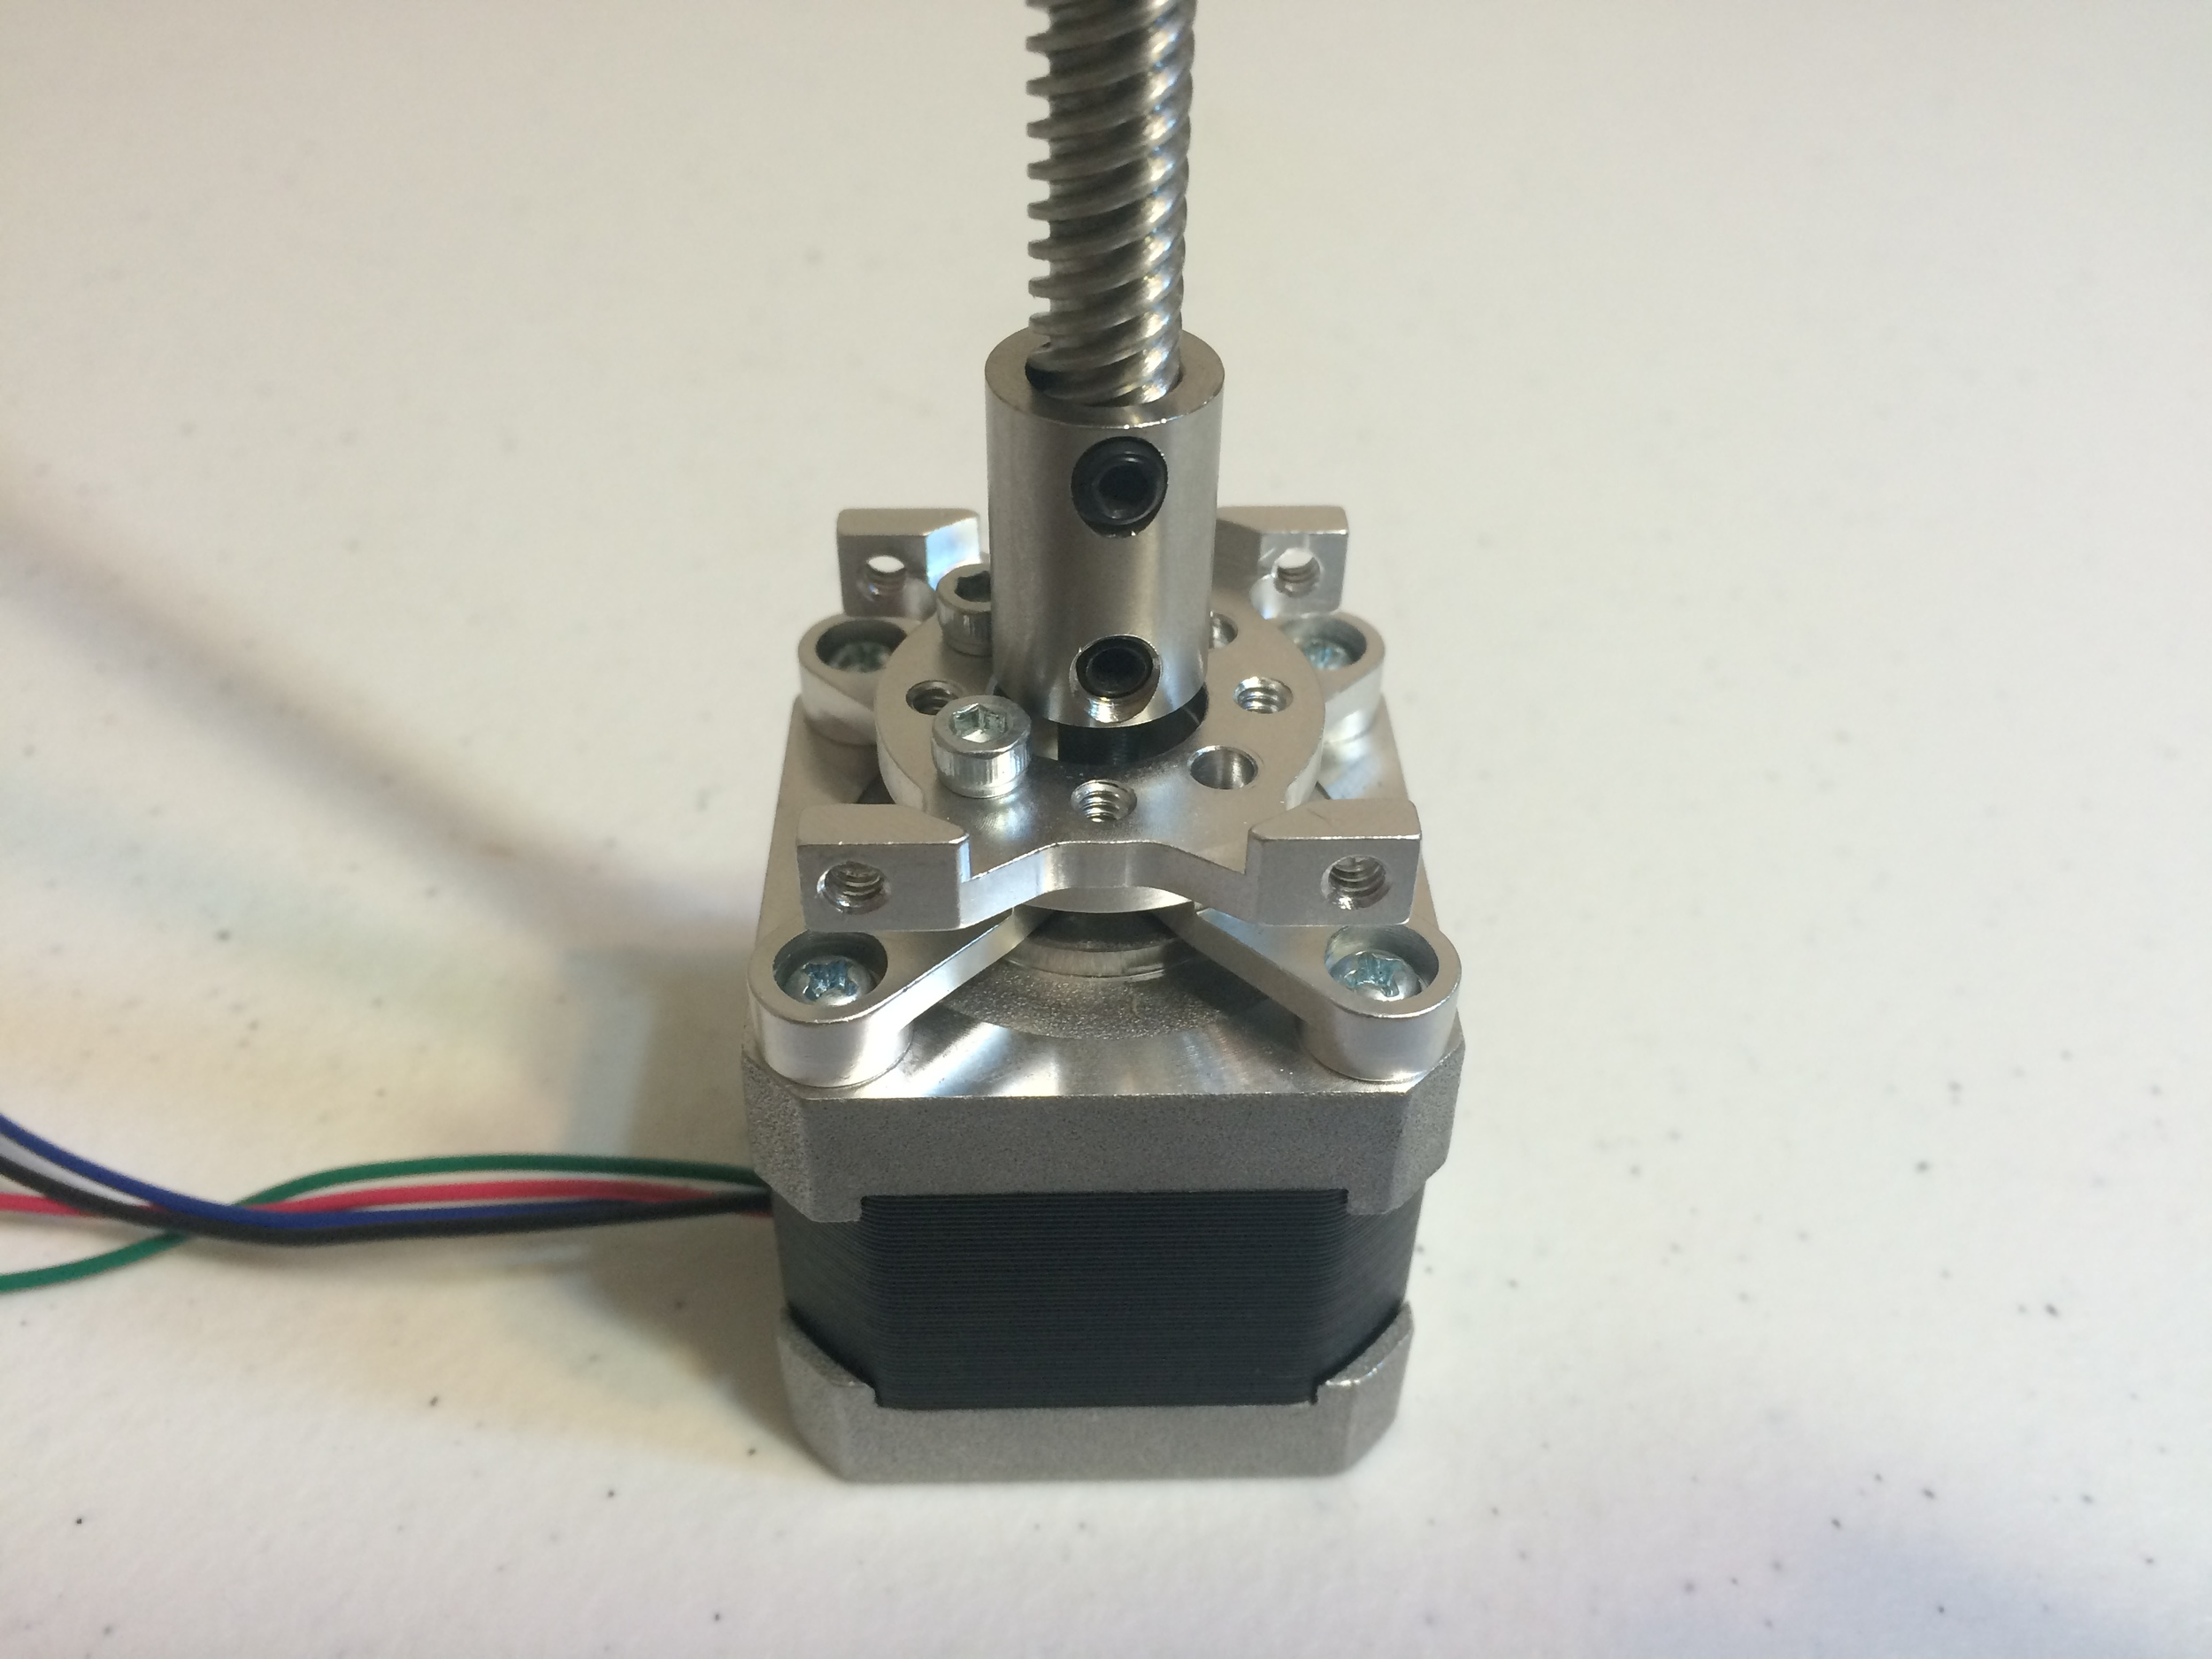 LINEAR STEPPER MOTOR WITH MOUNT.